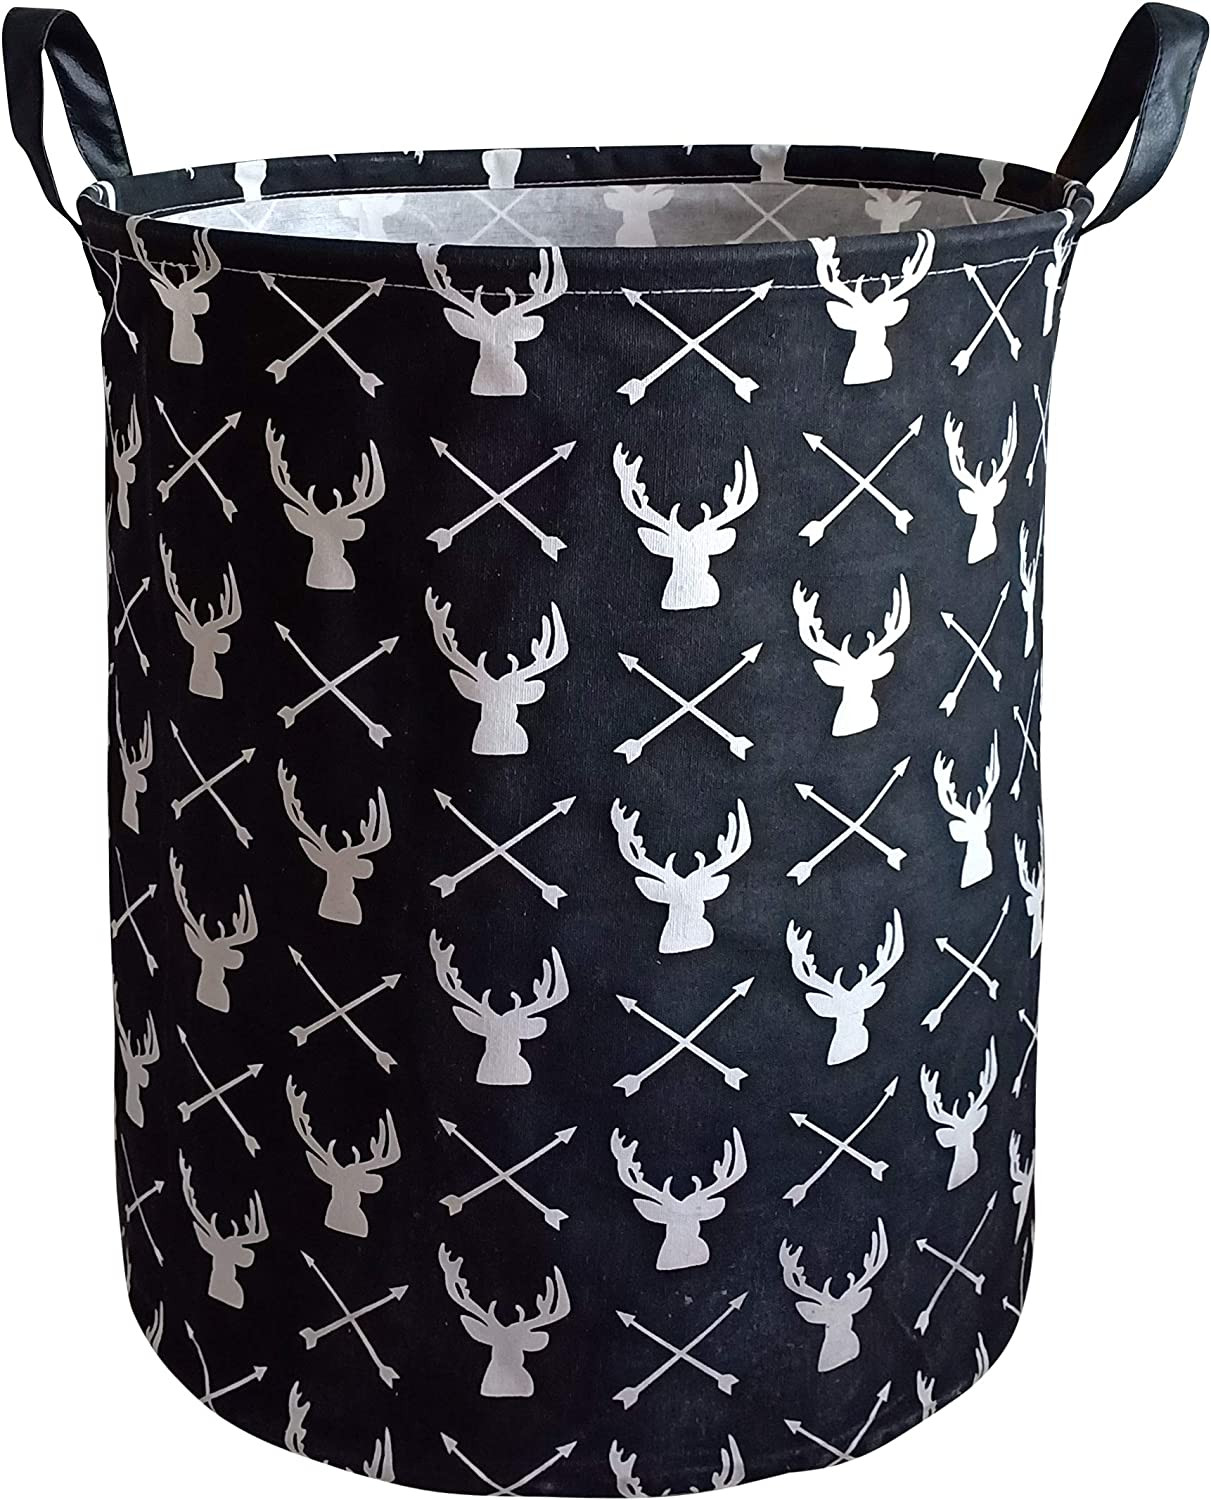 KUNRO Large Sized Storage Basket Waterproof Coating Organizer Bin Laundry Hamper for Nursery Clothes Toys (Deer)